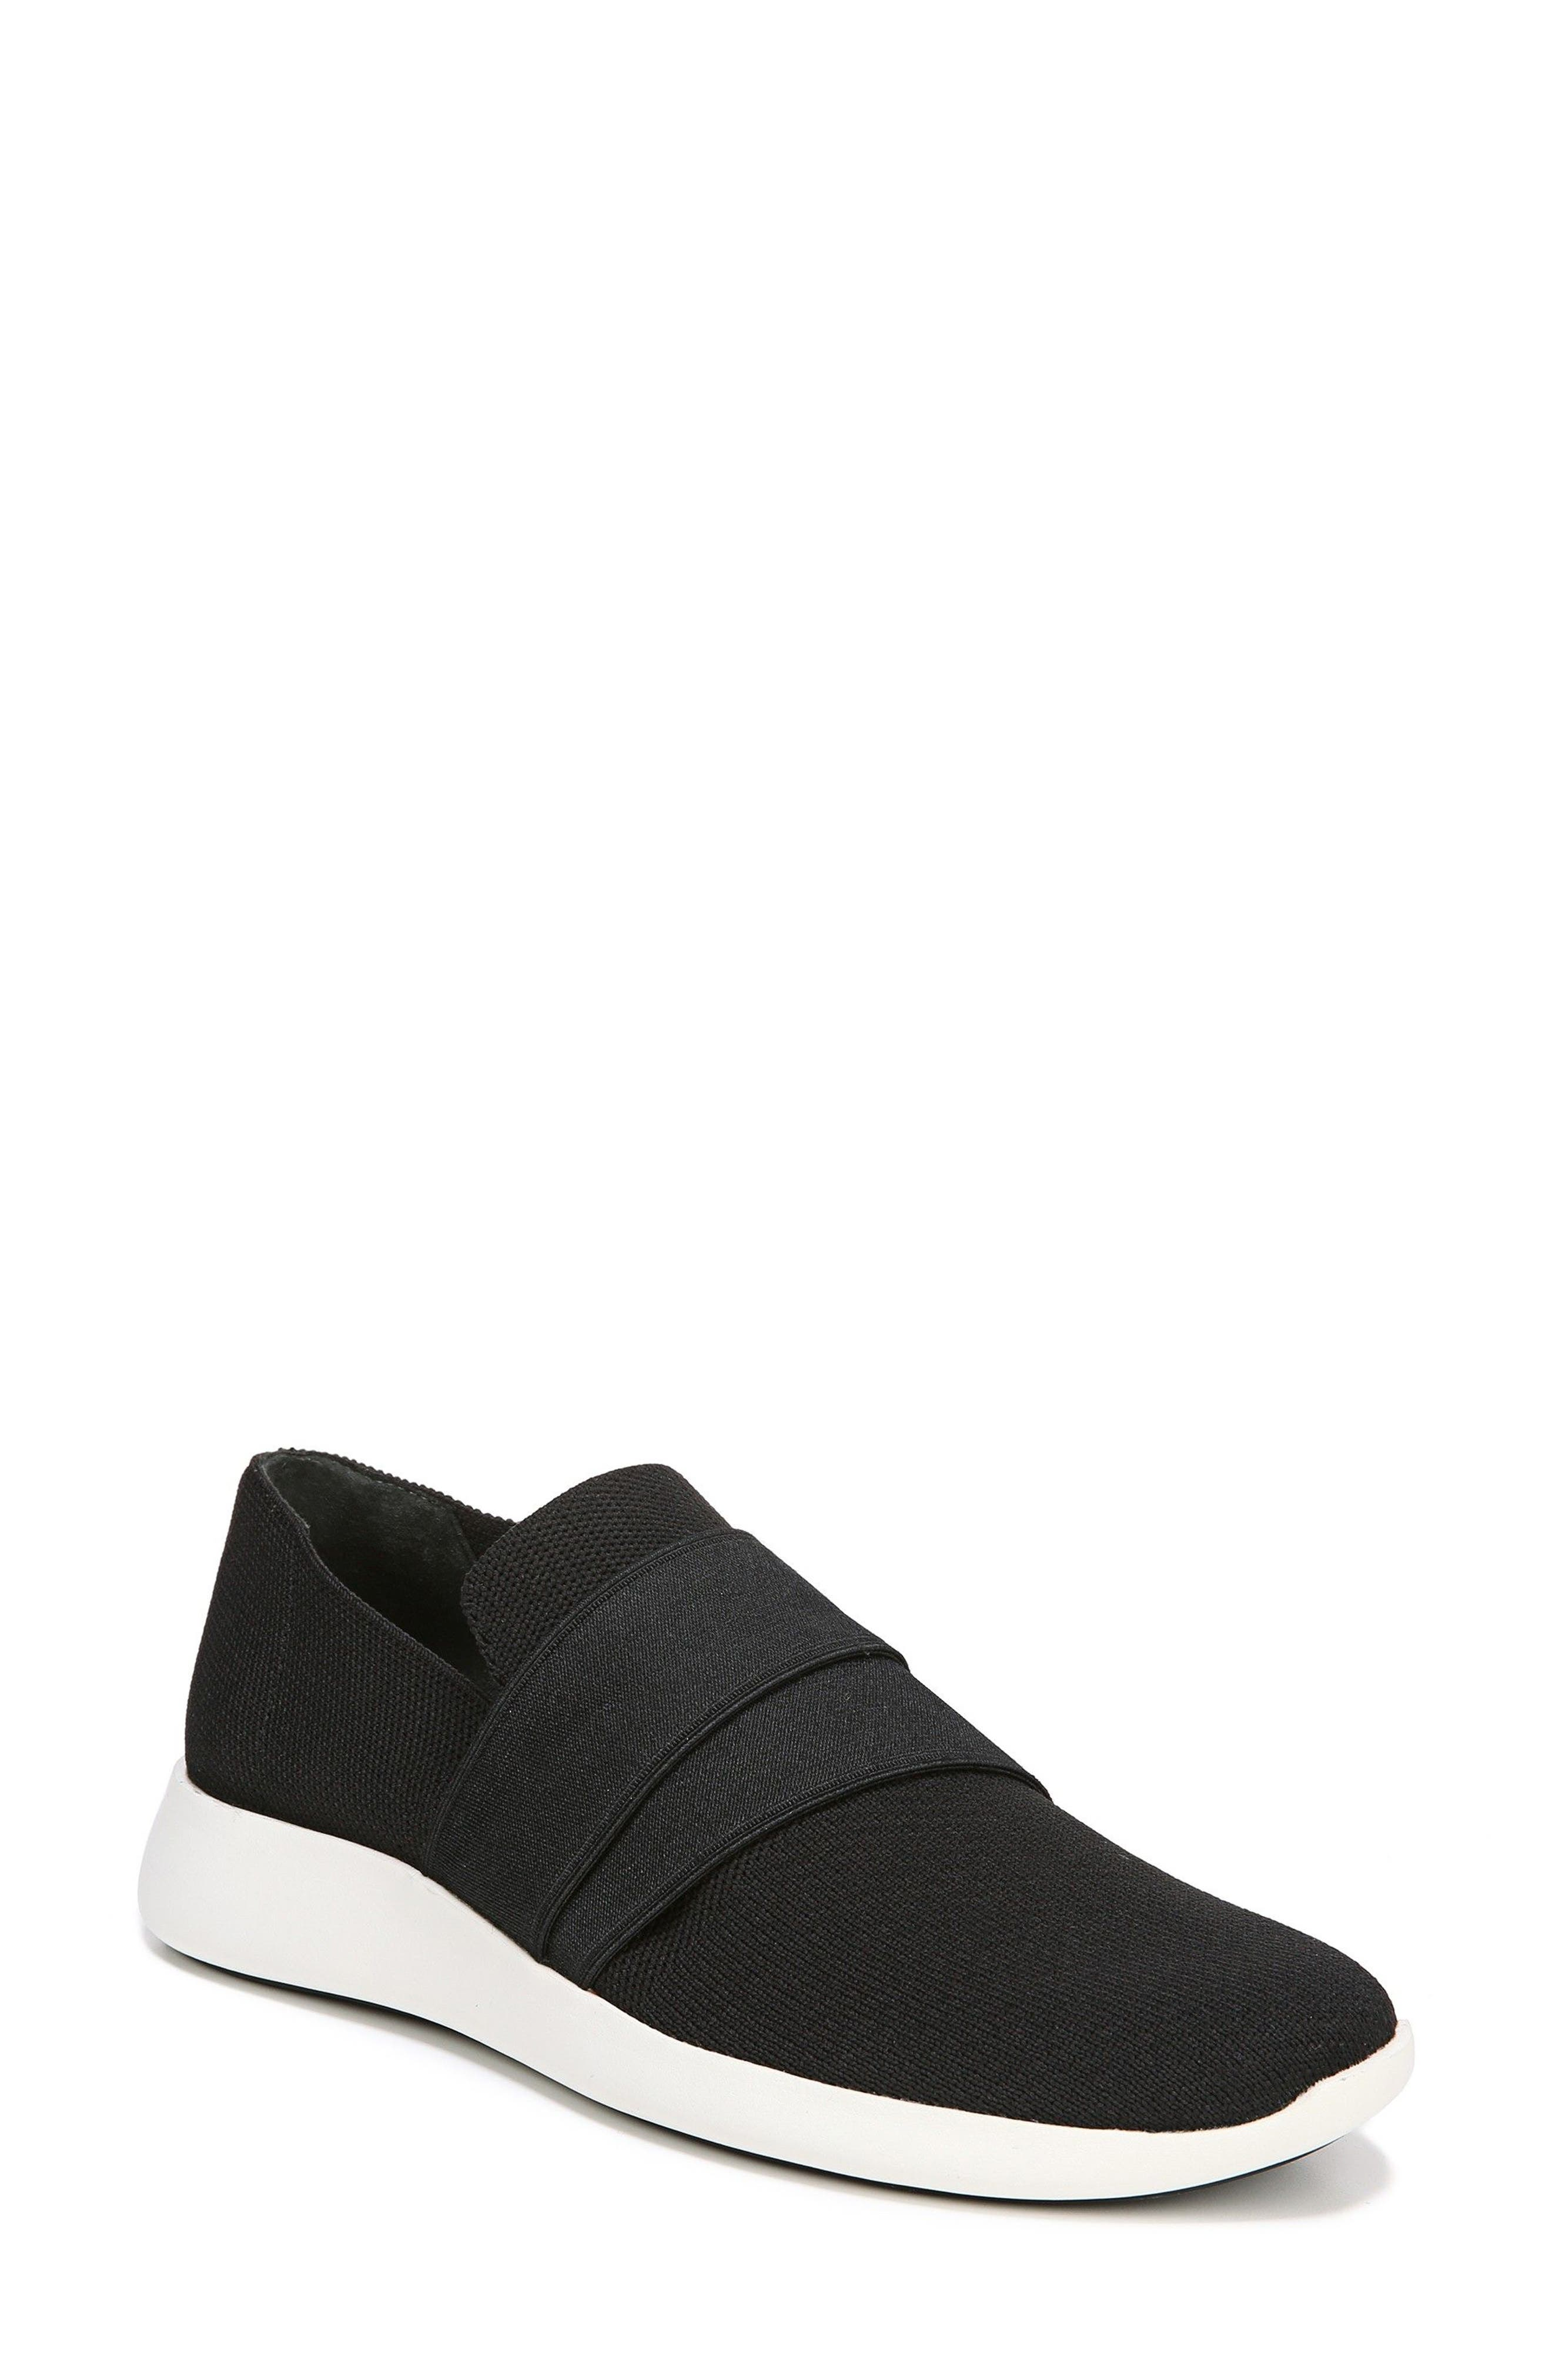 Aston Slip-On Sneaker,                         Main,                         color, BLACK SOLID KNIT